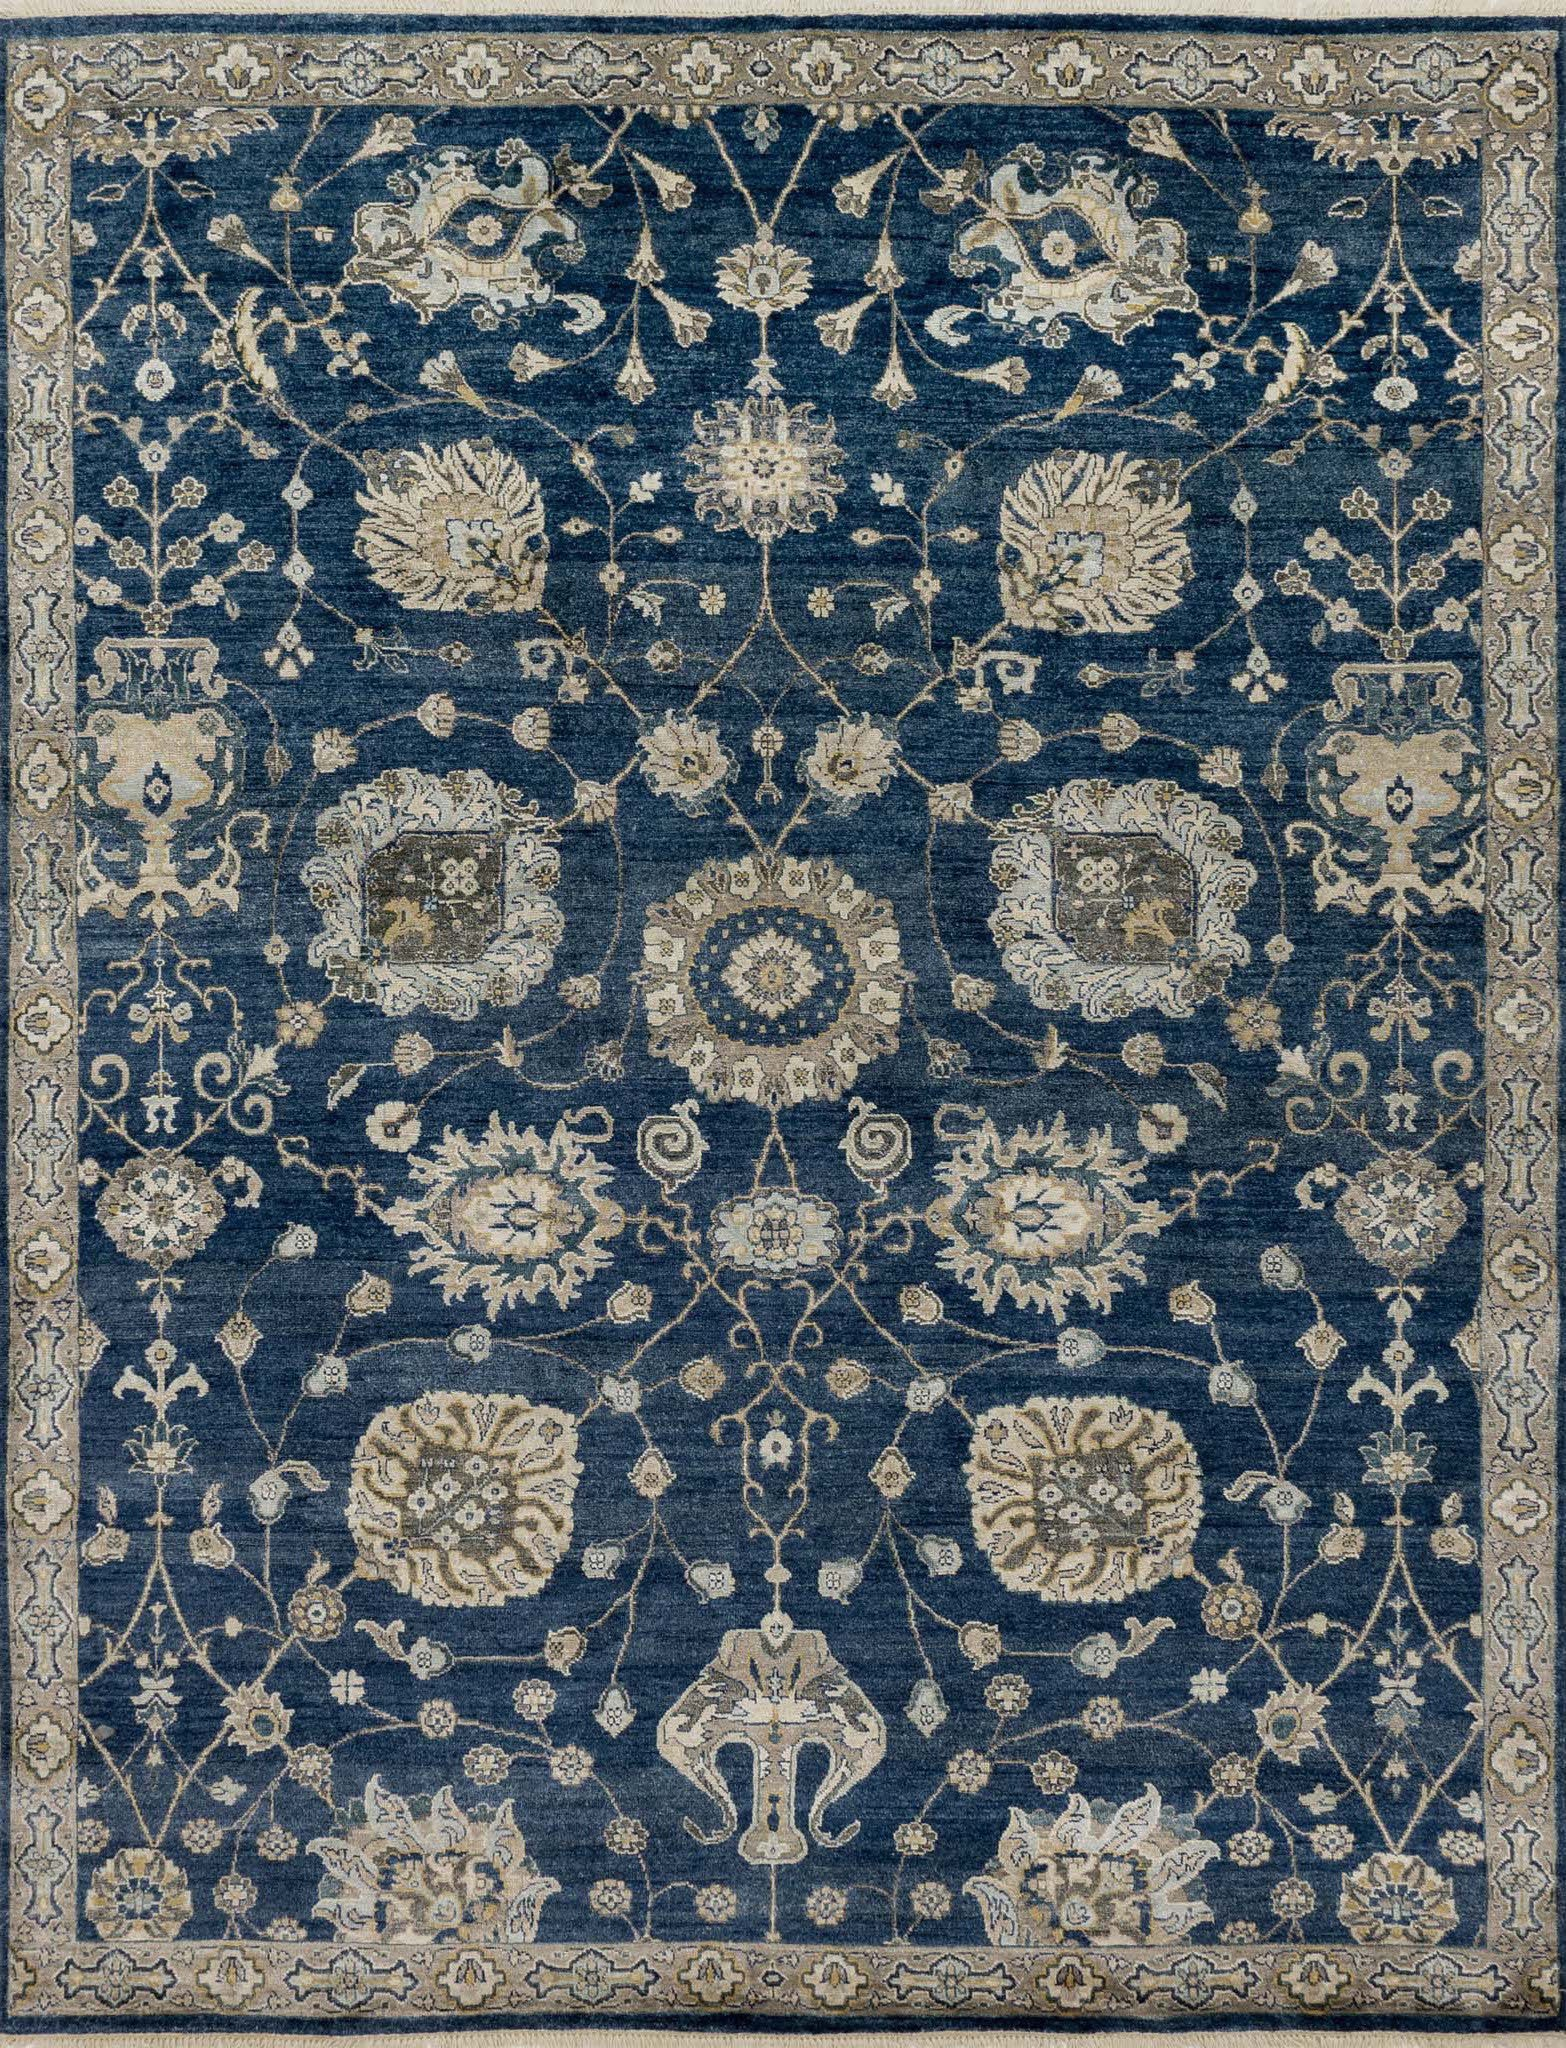 Loloi Kensington KG-08 Midnight Area Rug by Henrietta Spencer-Churchill main image